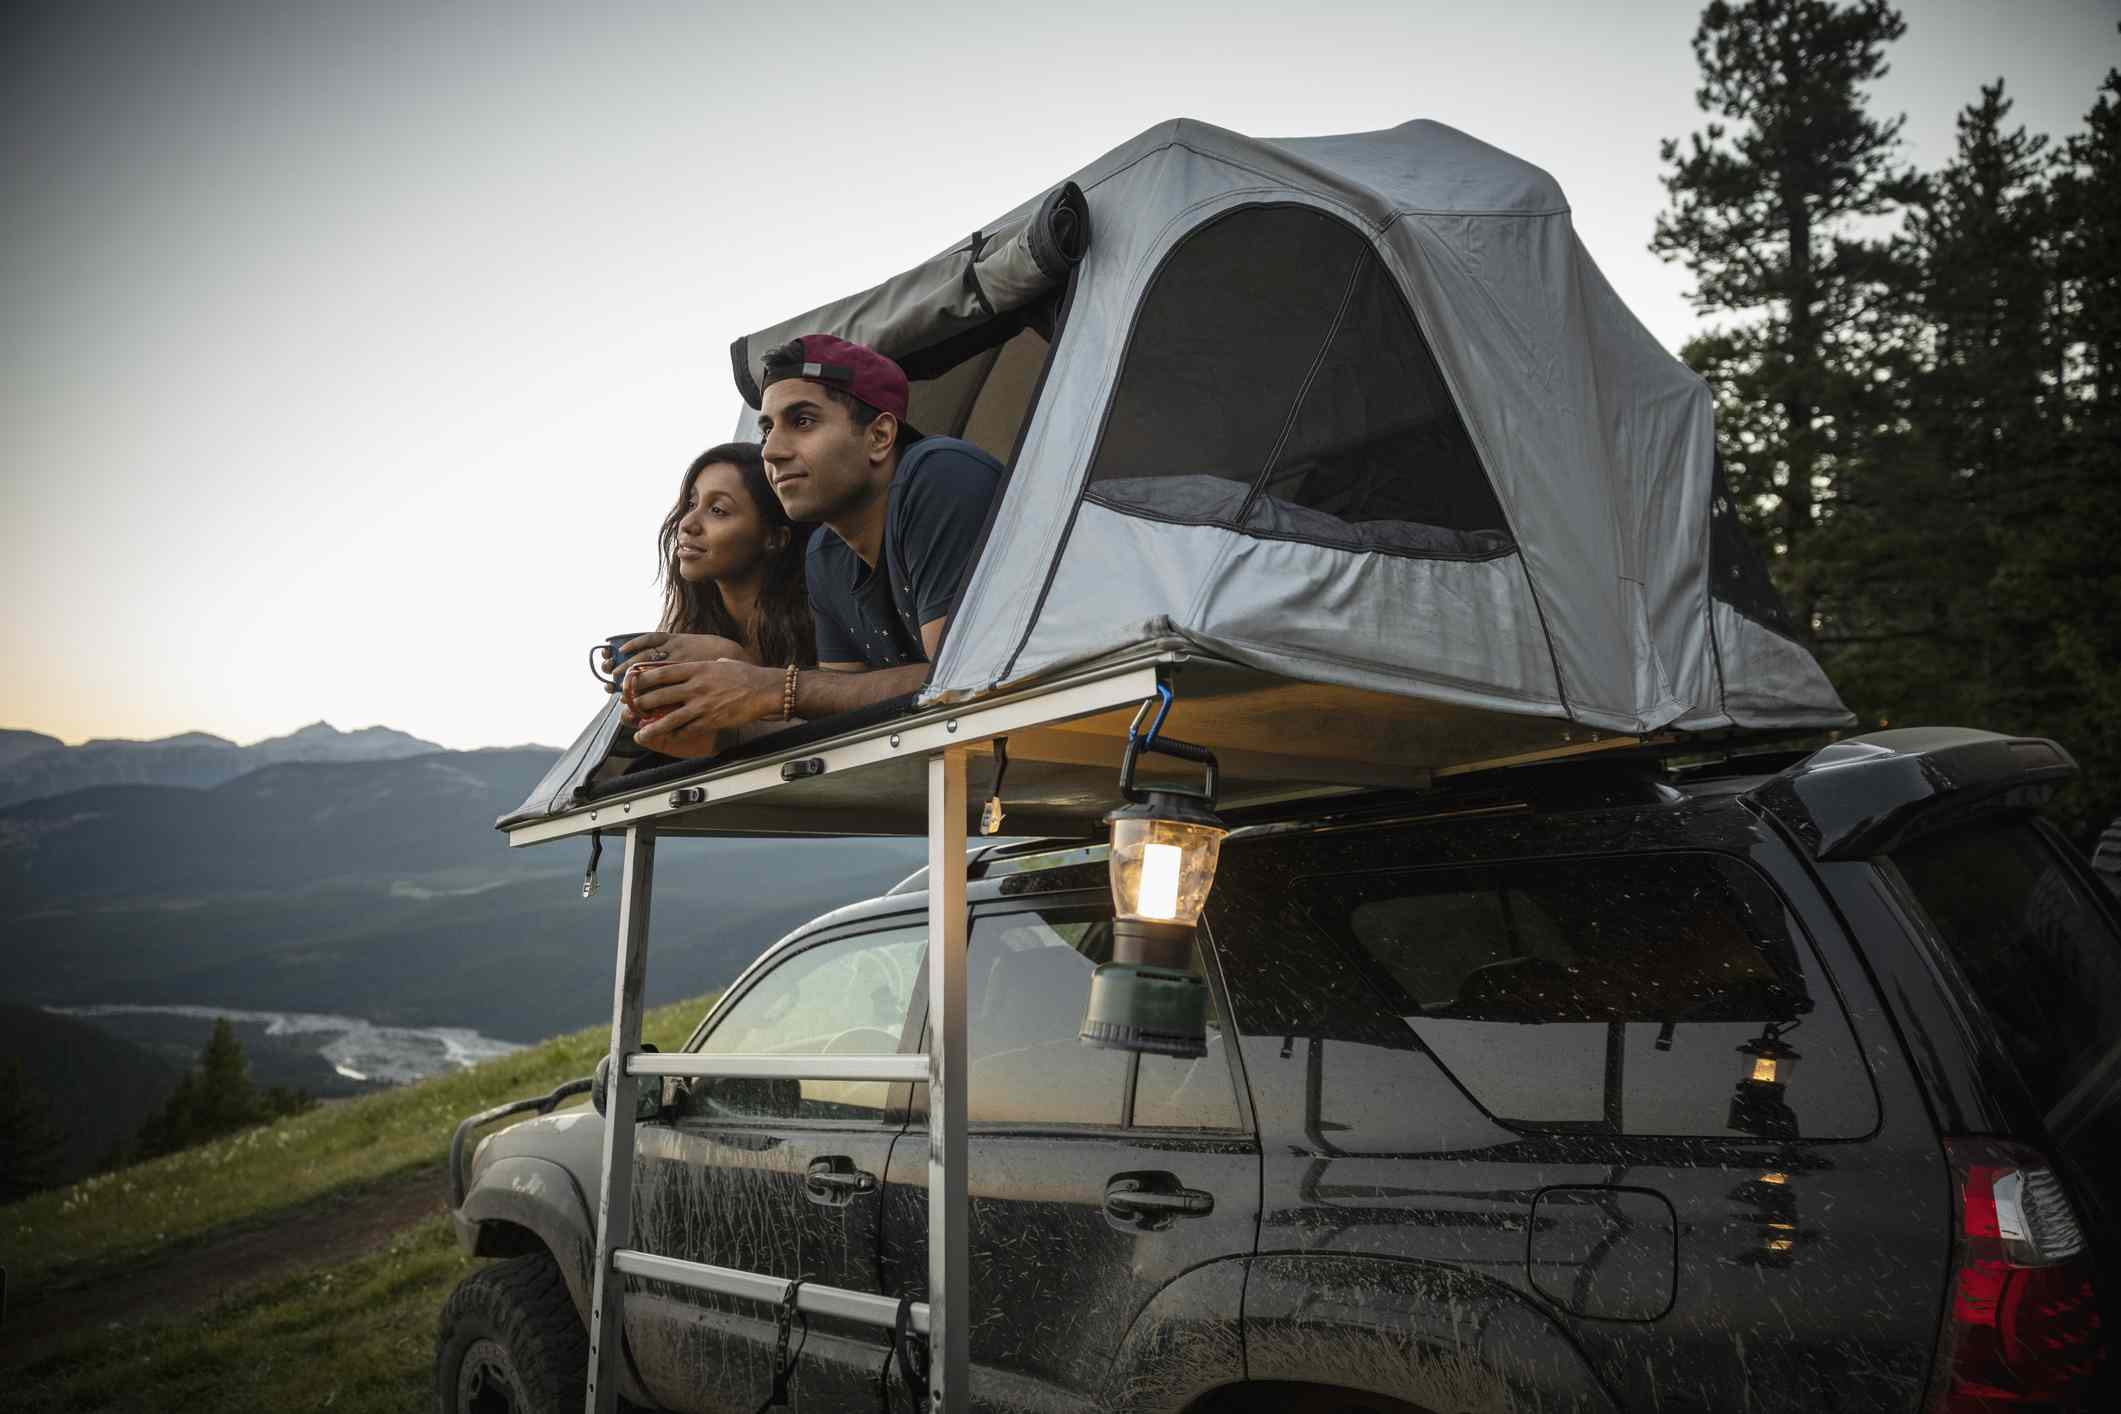 Two people in a car tent on top of a vehicle